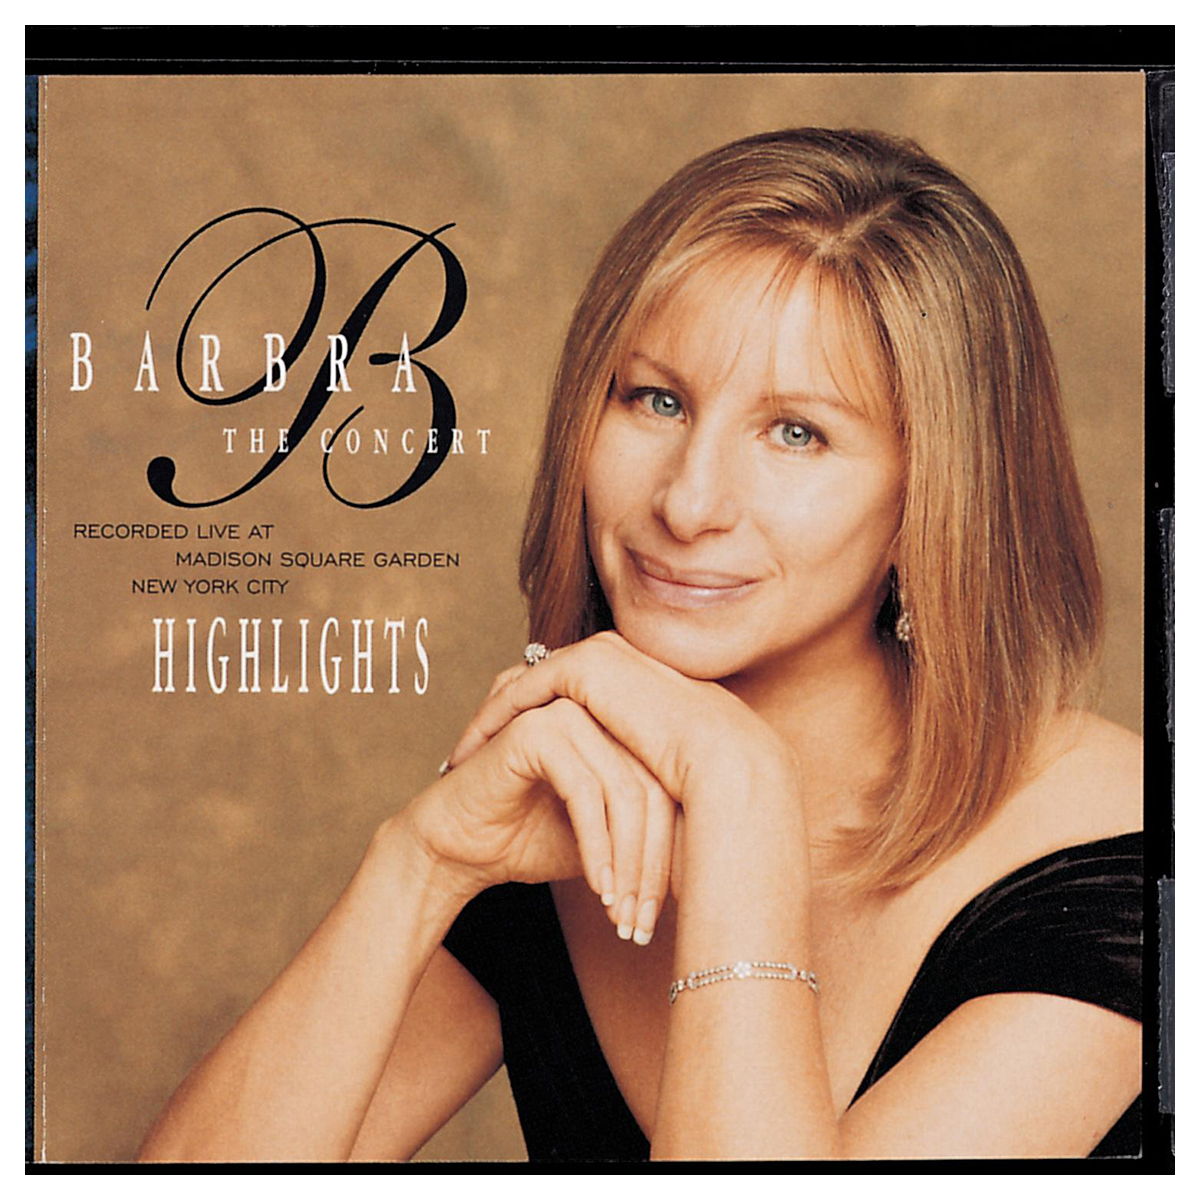 The Concert-Highlights CD